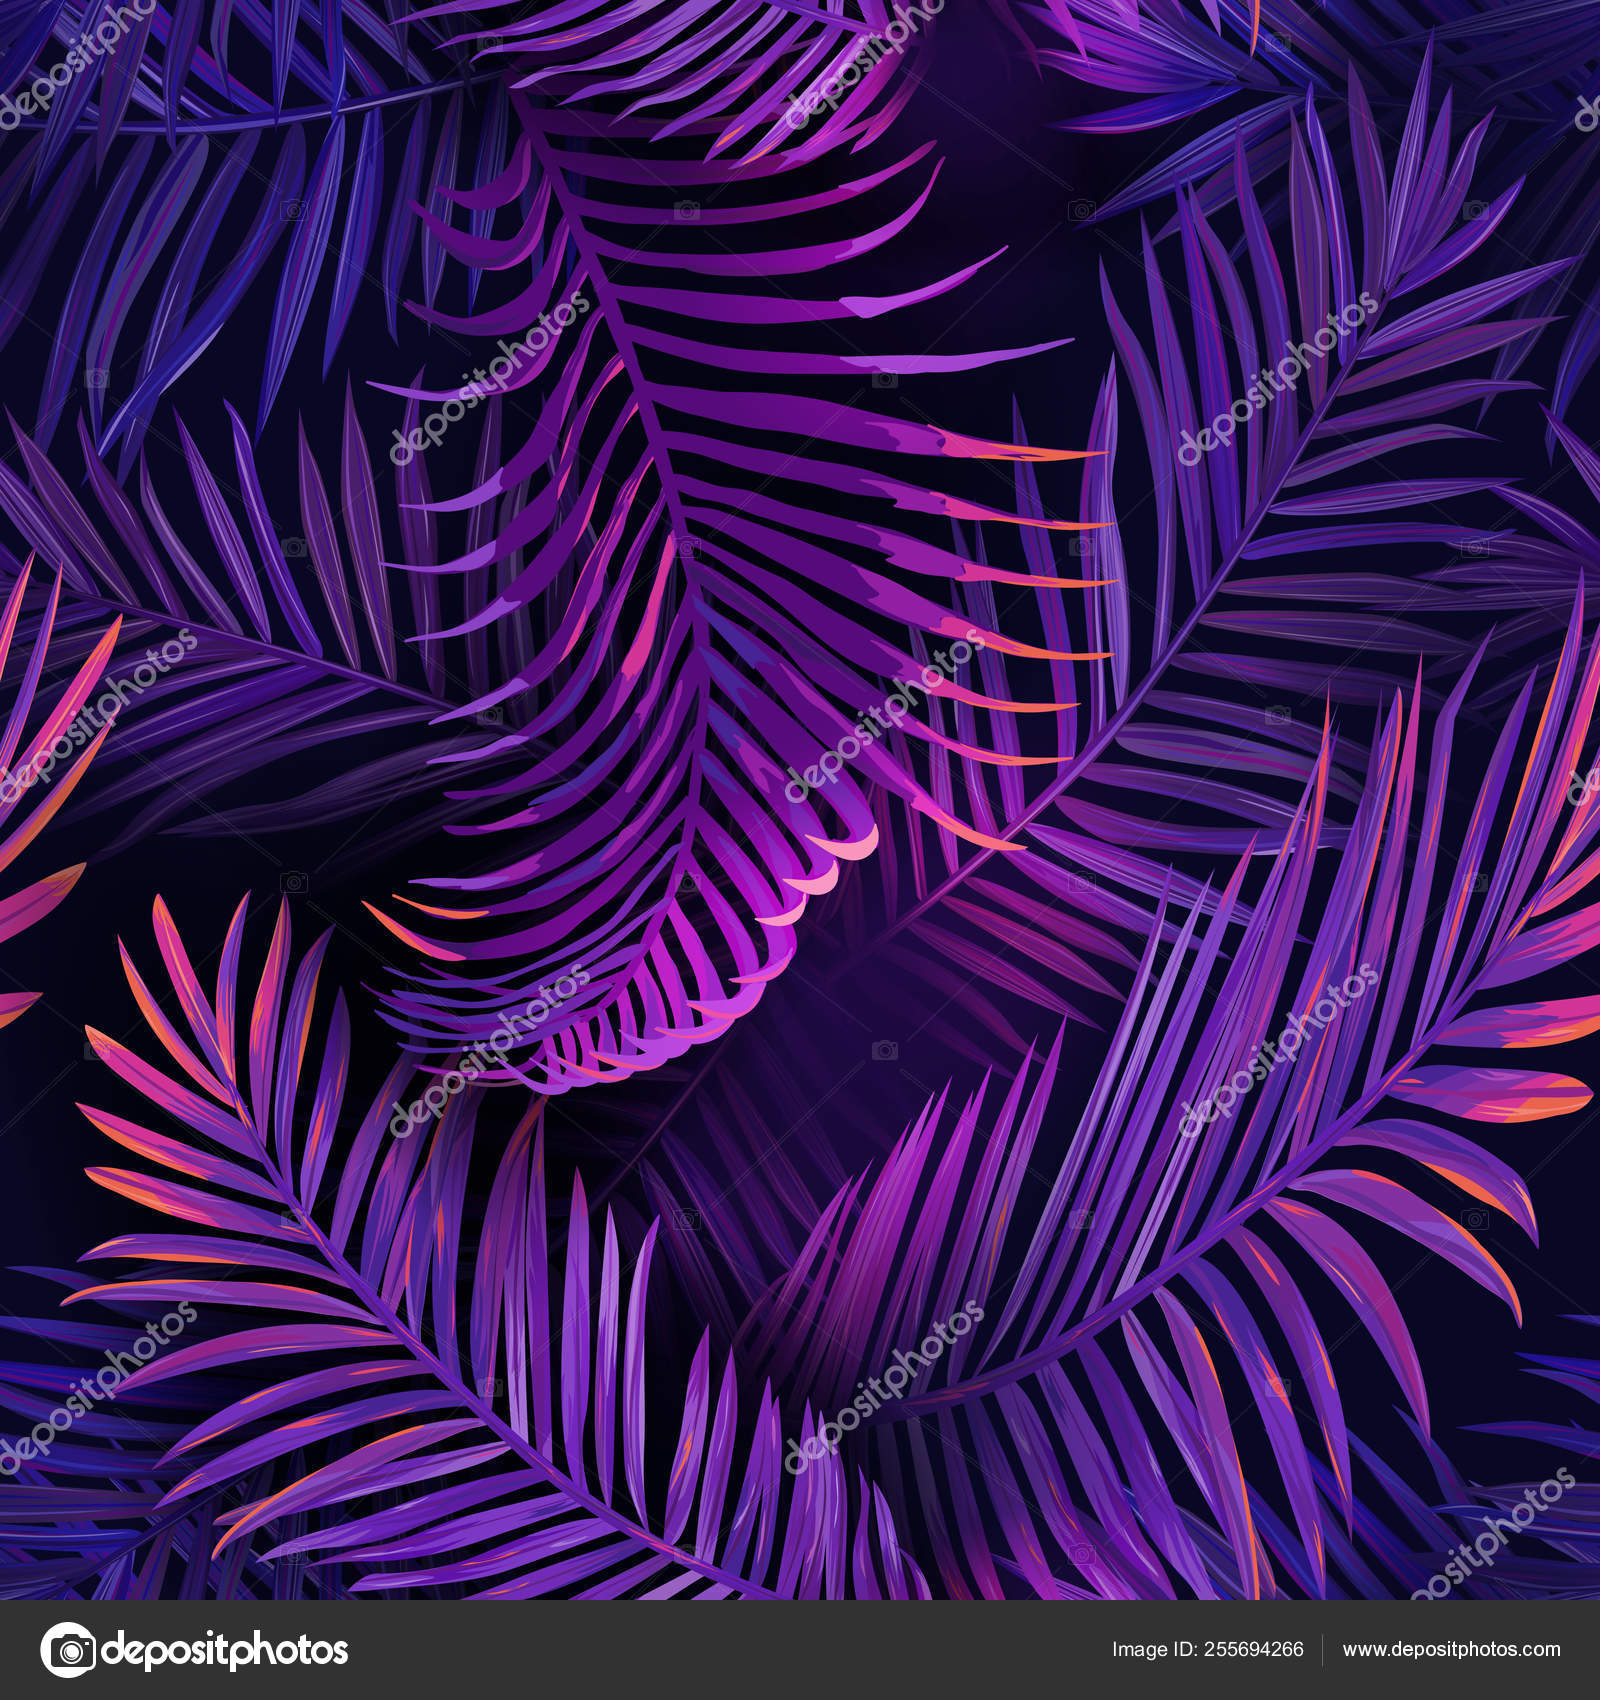 Tropical Neon Palm Leaves Seamless Pattern Jungle Purple Colored Floral Background Summer Exotic Botanical Foliage Fluorescent Design With Tropic Plants For Fabric Textile Vector Illustration Stock Vector C Woodhouse 255694266 Find the perfect tropical leaves stock photos and editorial news pictures from getty images. tropical neon palm leaves seamless pattern jungle purple colored floral background summer exotic botanical foliage fluorescent design with tropic plants for fabric textile vector illustration stock vector c woodhouse 255694266